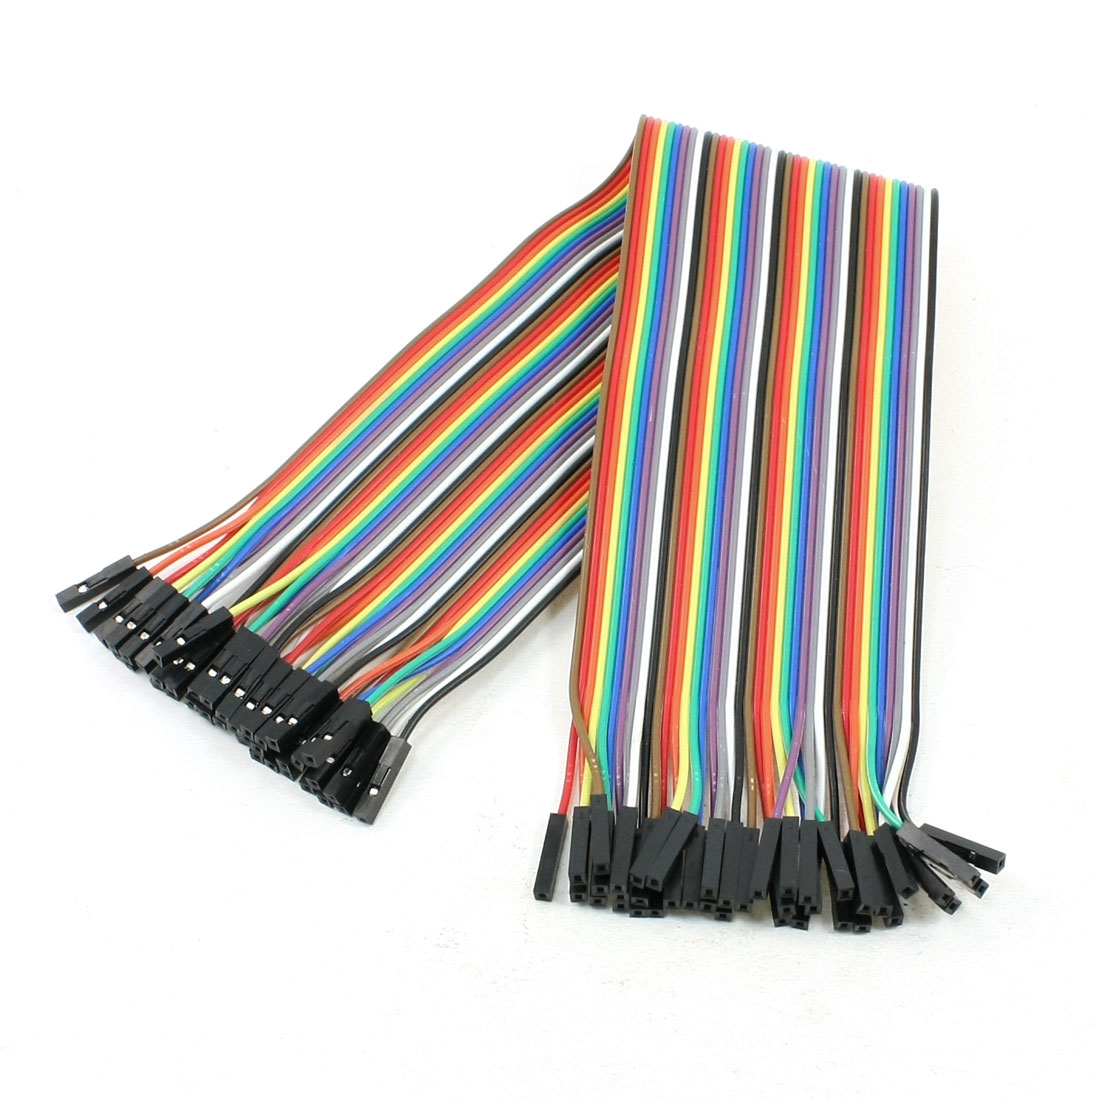 31cm Long 40Pin Female to Female Wire Jumper Cable Line Connect Colorful